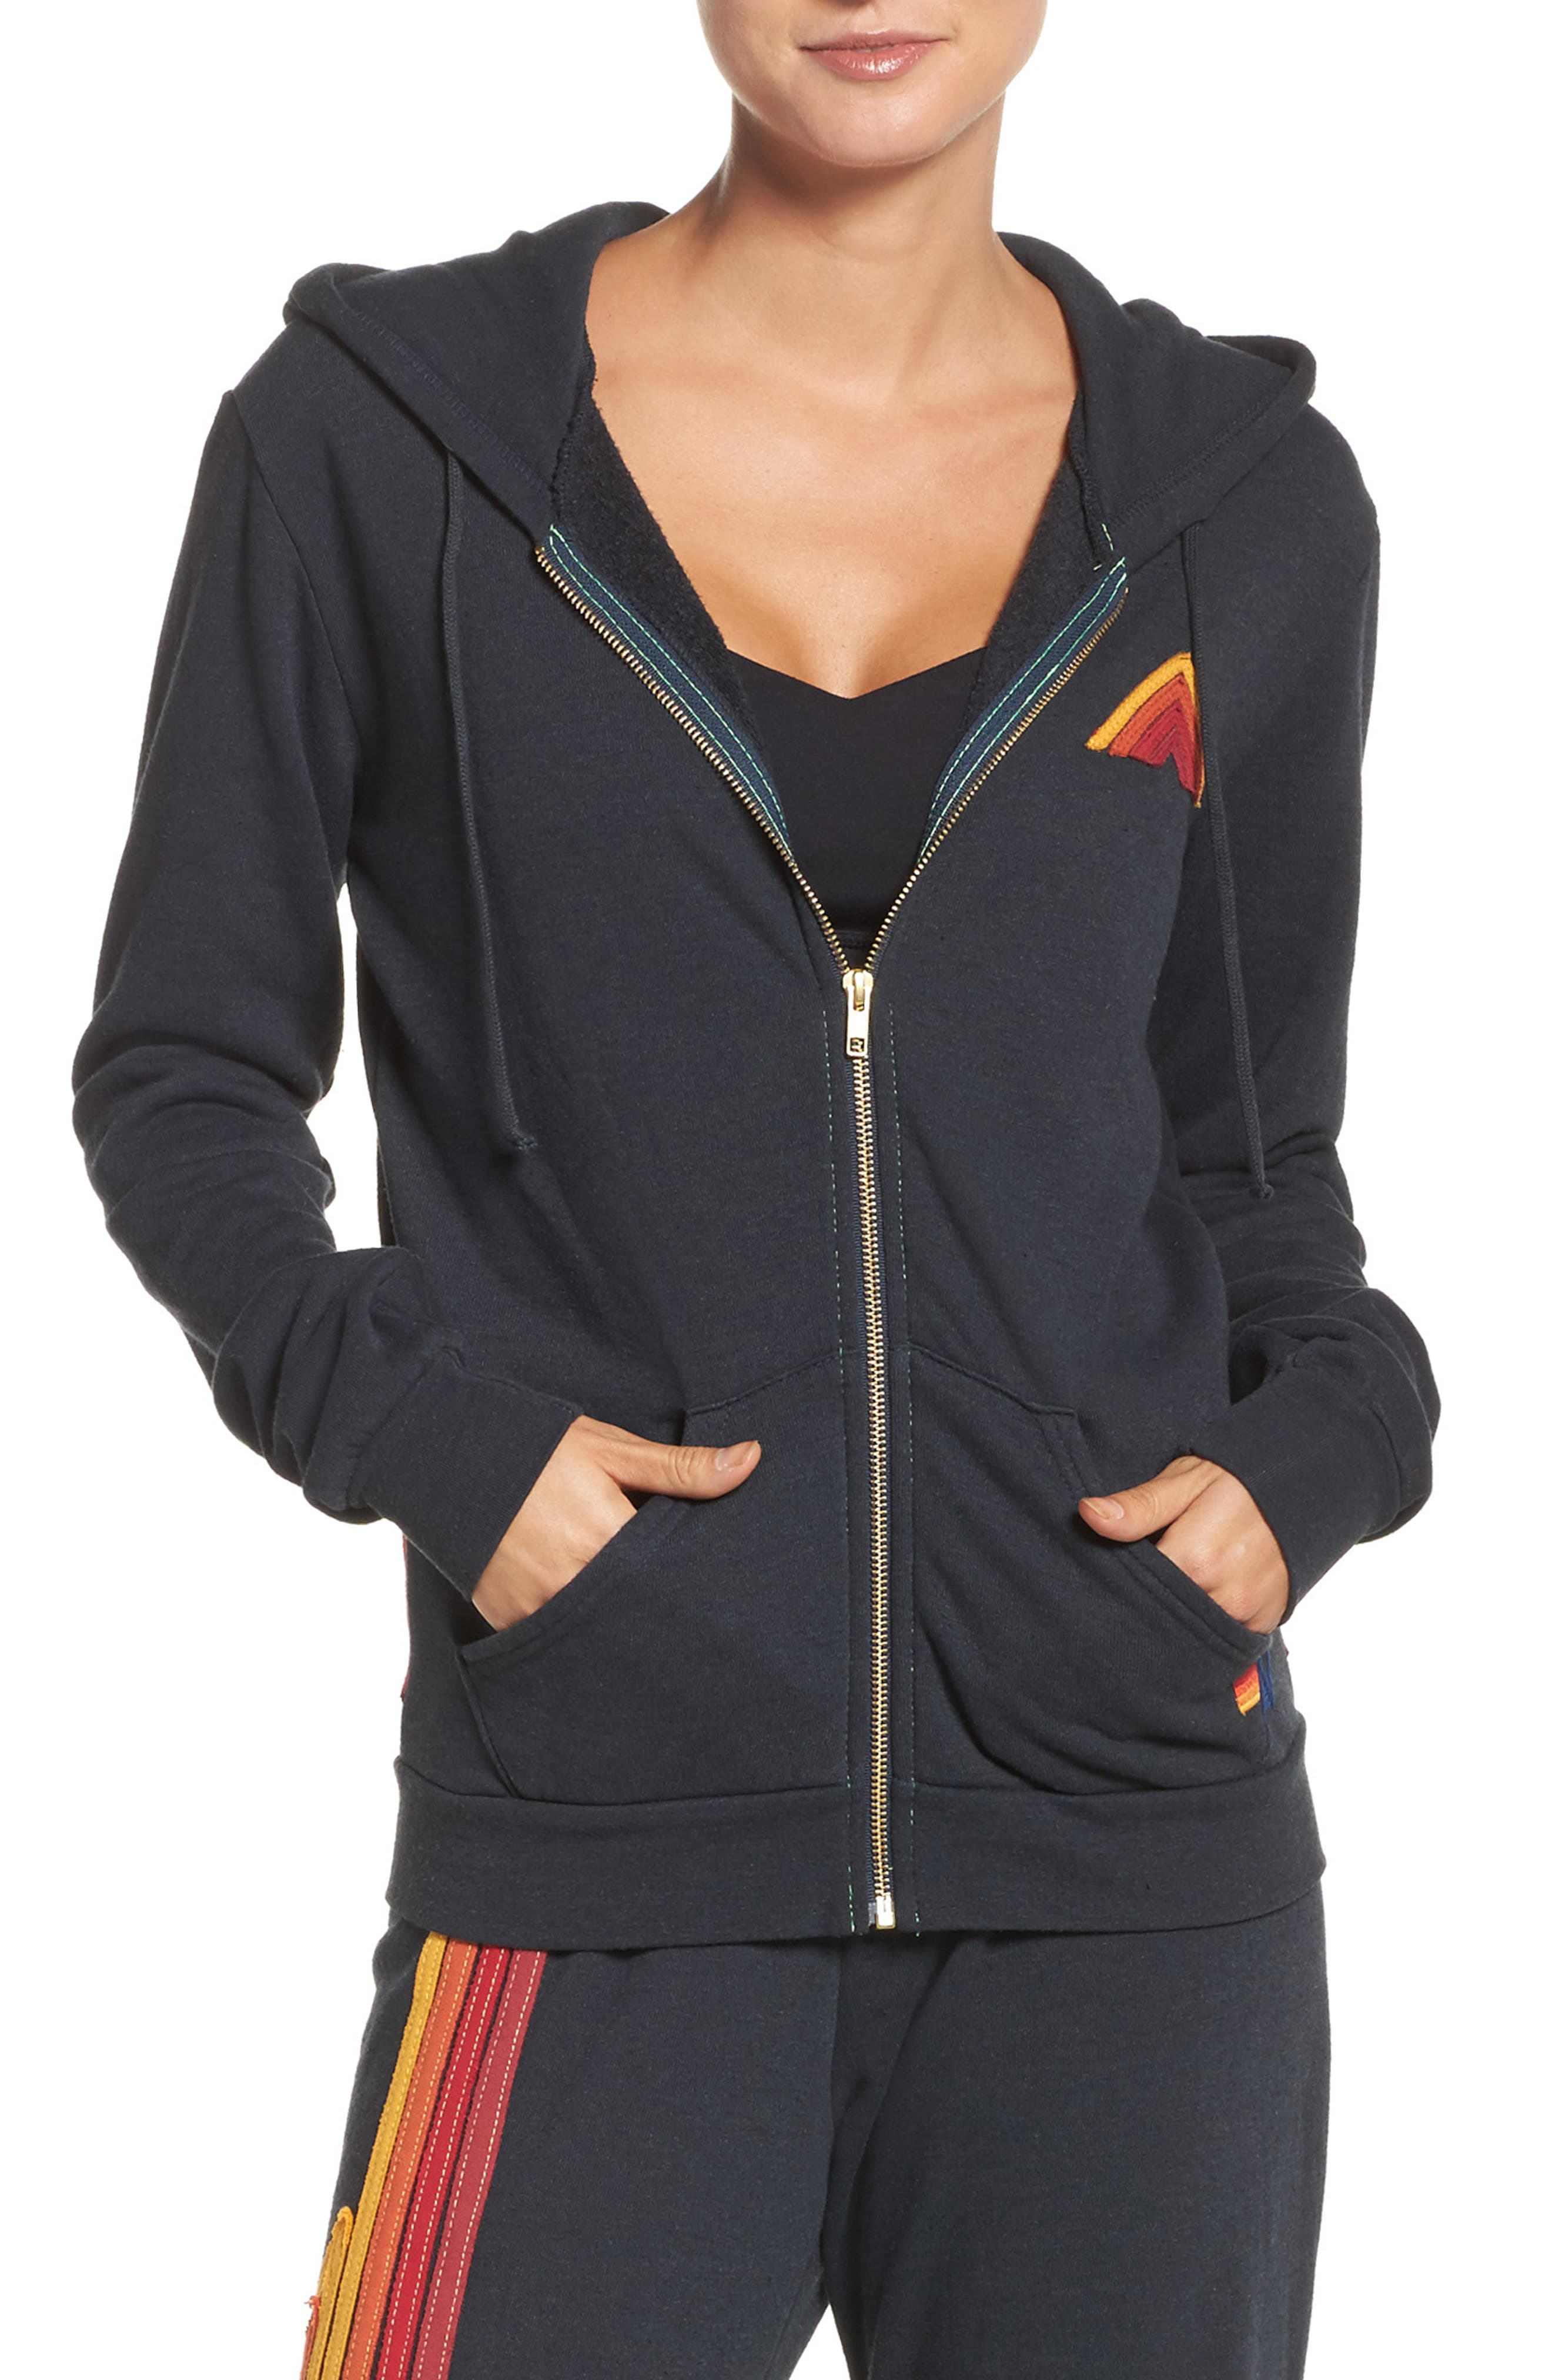 Mountain Stripe Zip Hoodie,                         Main,                         color, Charcoal/ Red Stripes